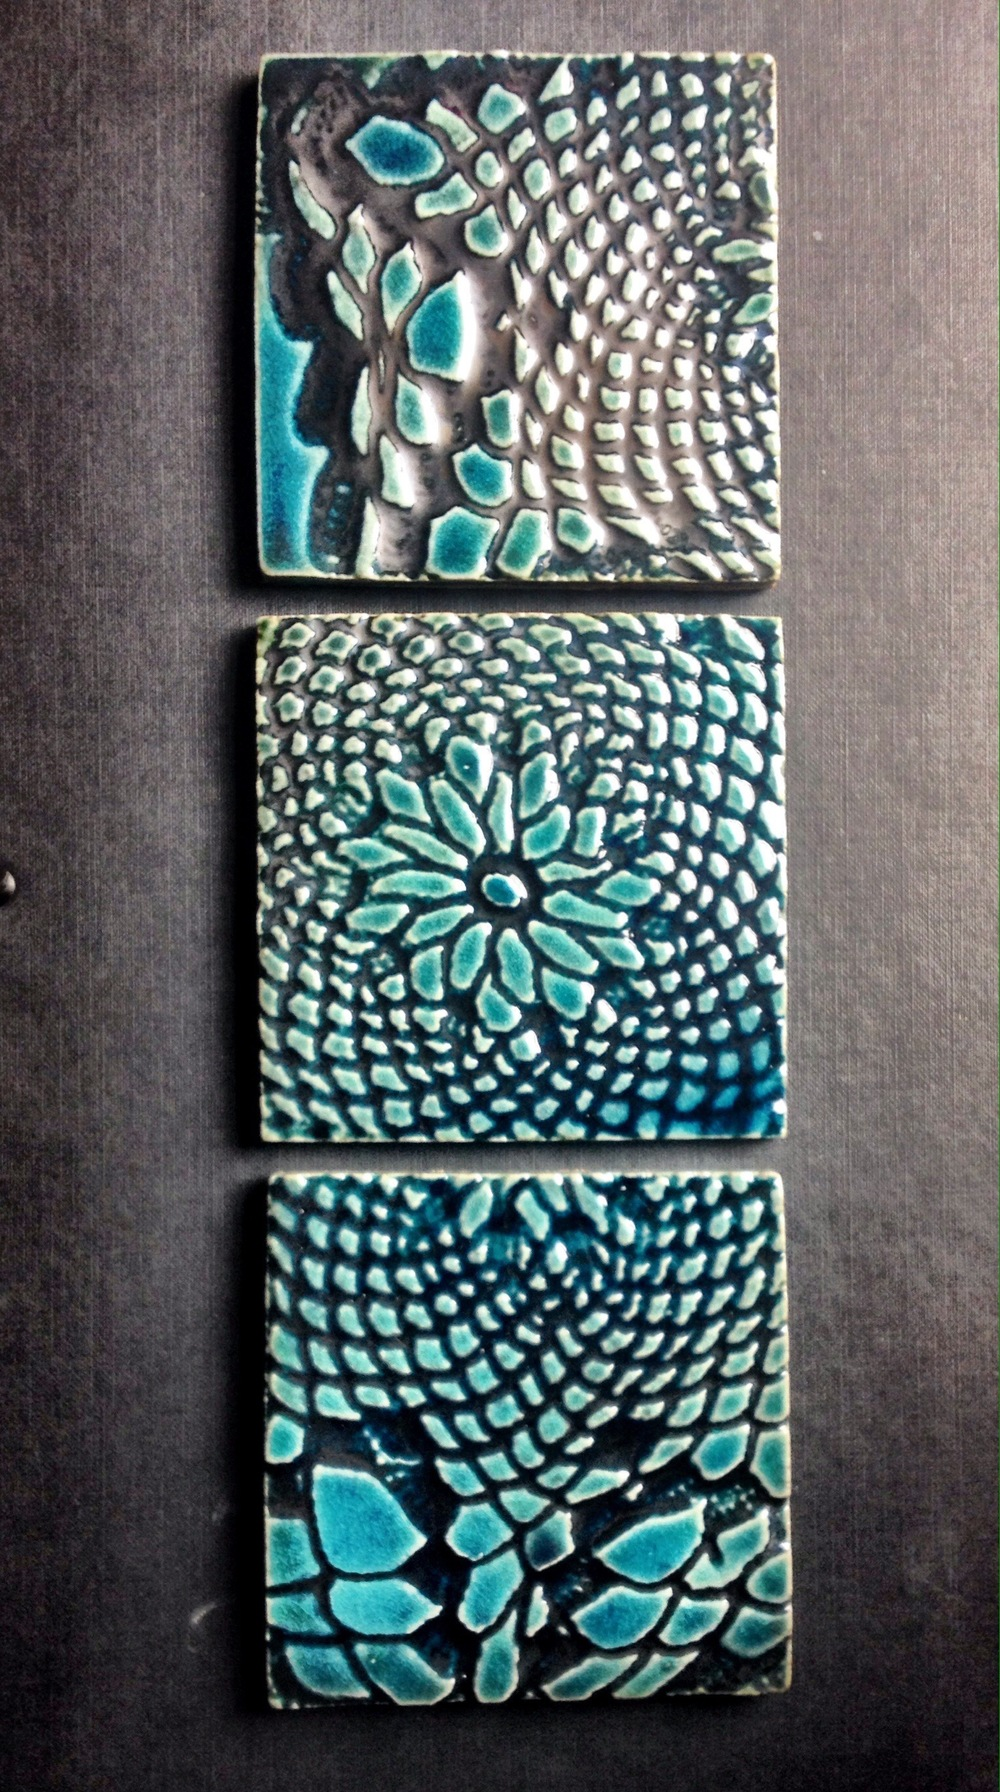 The beauty of handmade ceramic tiles guy mitchell design the beauty of handmade ceramic tiles march 13 2016 by imogen mitchell dailygadgetfo Gallery